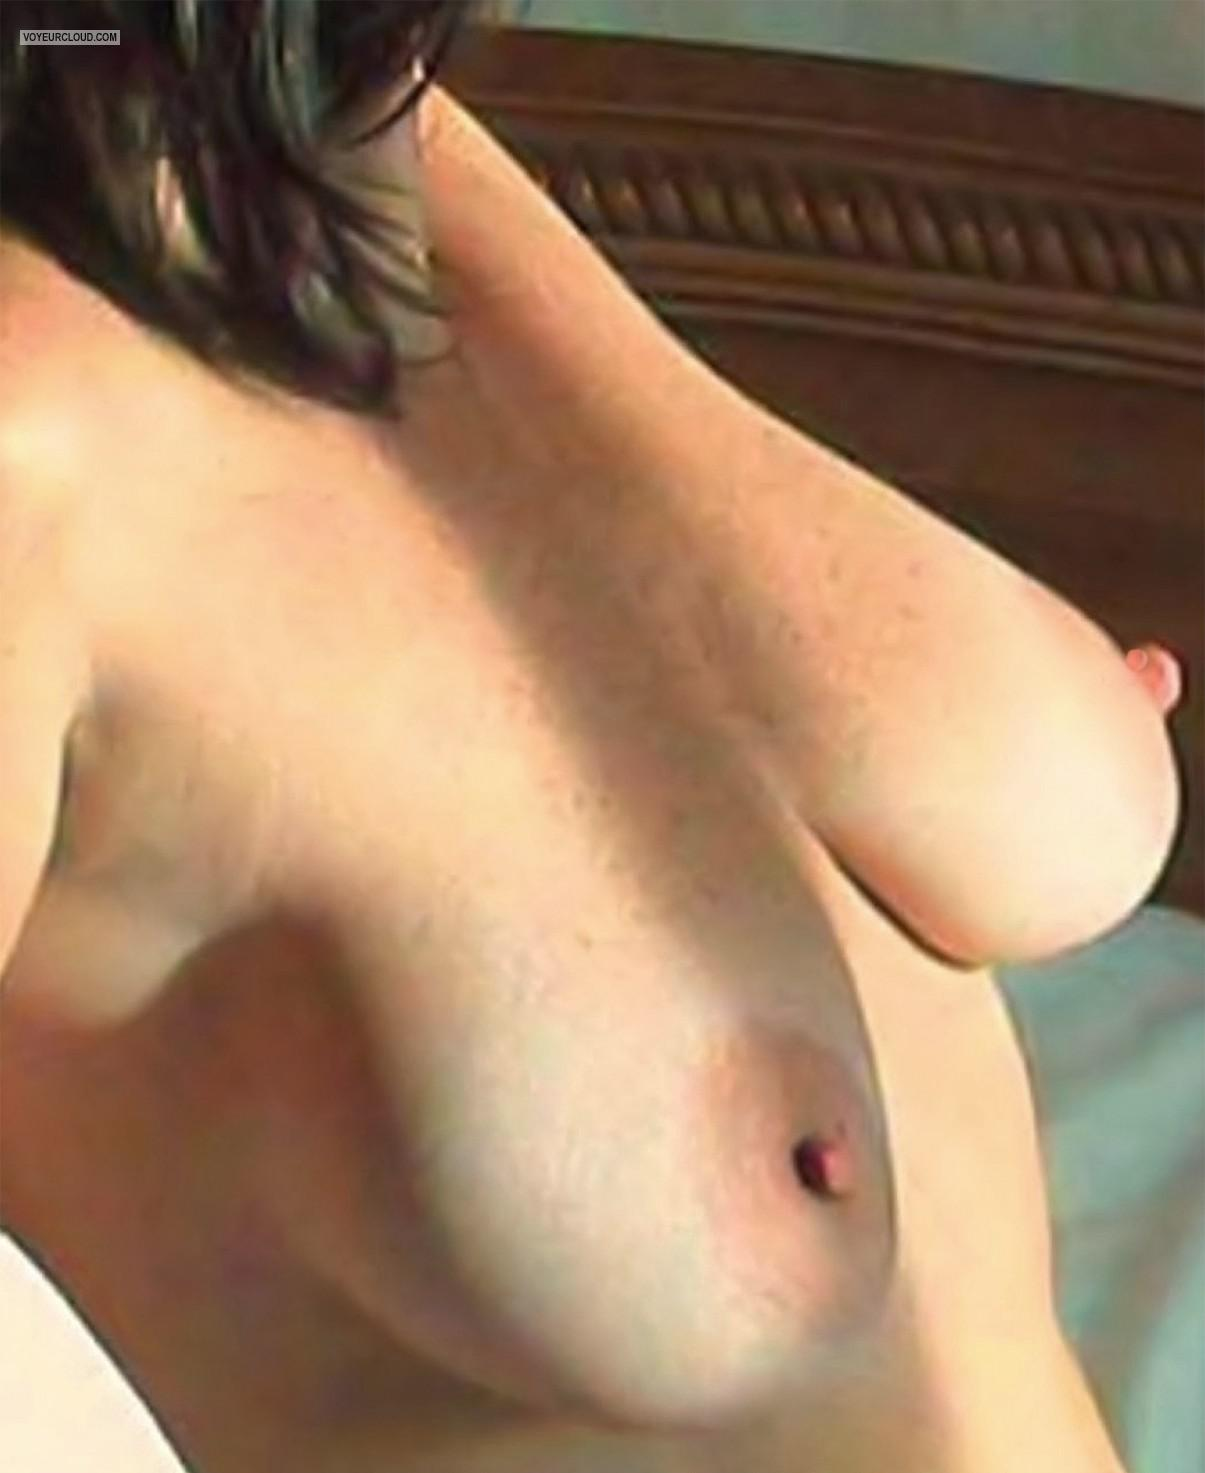 Big Tits Of My Wife Morning Glory